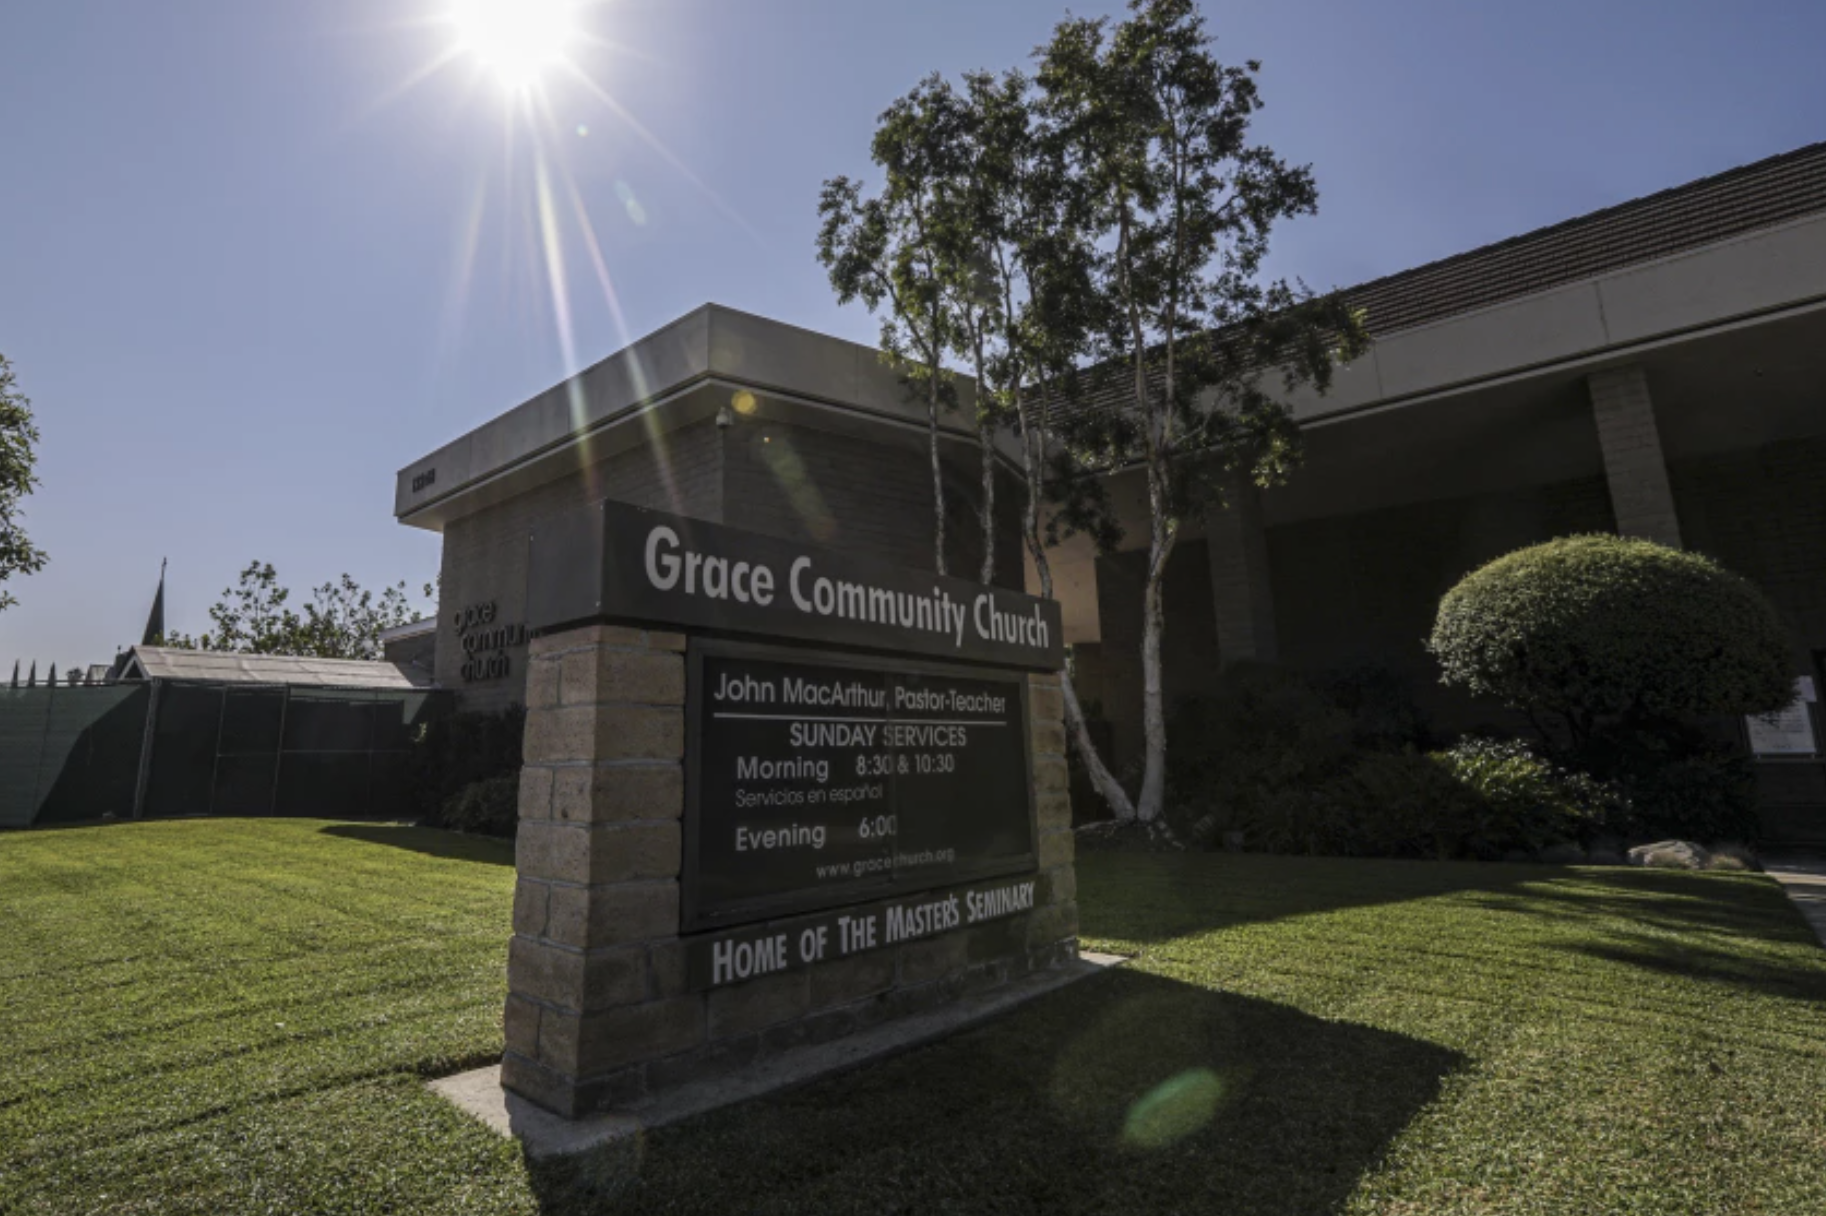 Grace Community Church in Sun Valley has been in a legal battle with L.A. County and the state after the church defied COVID-19 mandates prohibiting indoor worship services. (Irfan Khan / Los Angeles Times)